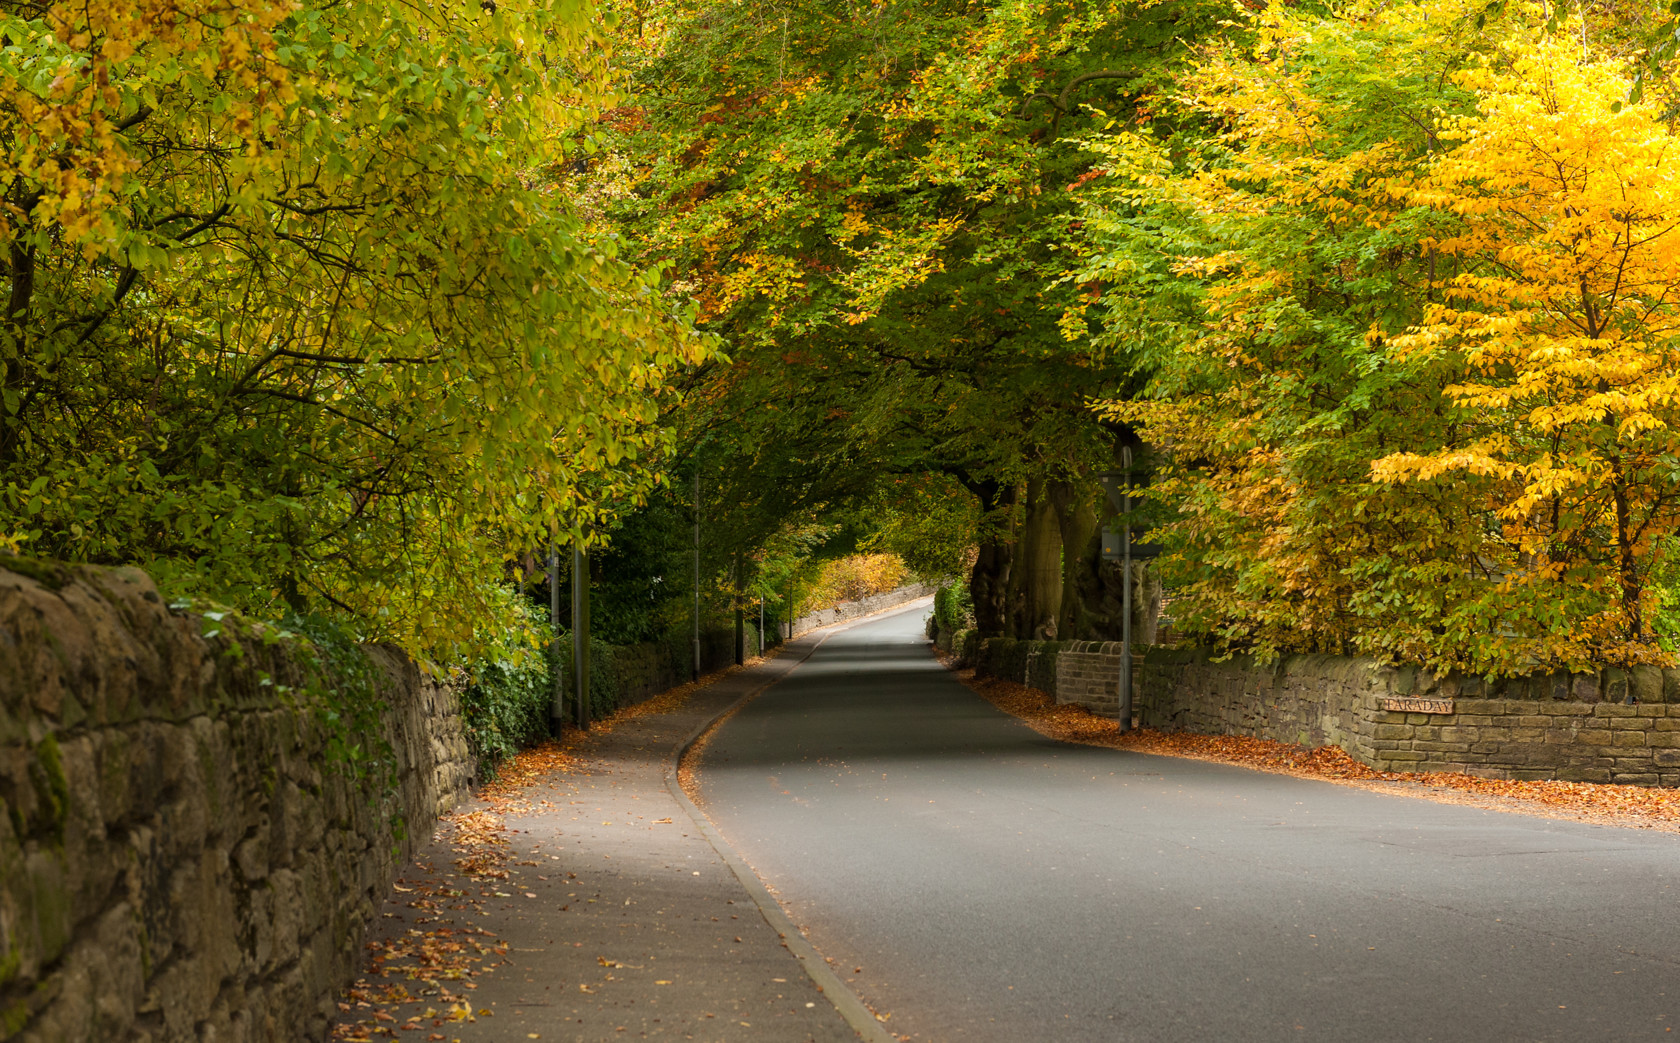 birdcage walk, otley (ref se 50) 